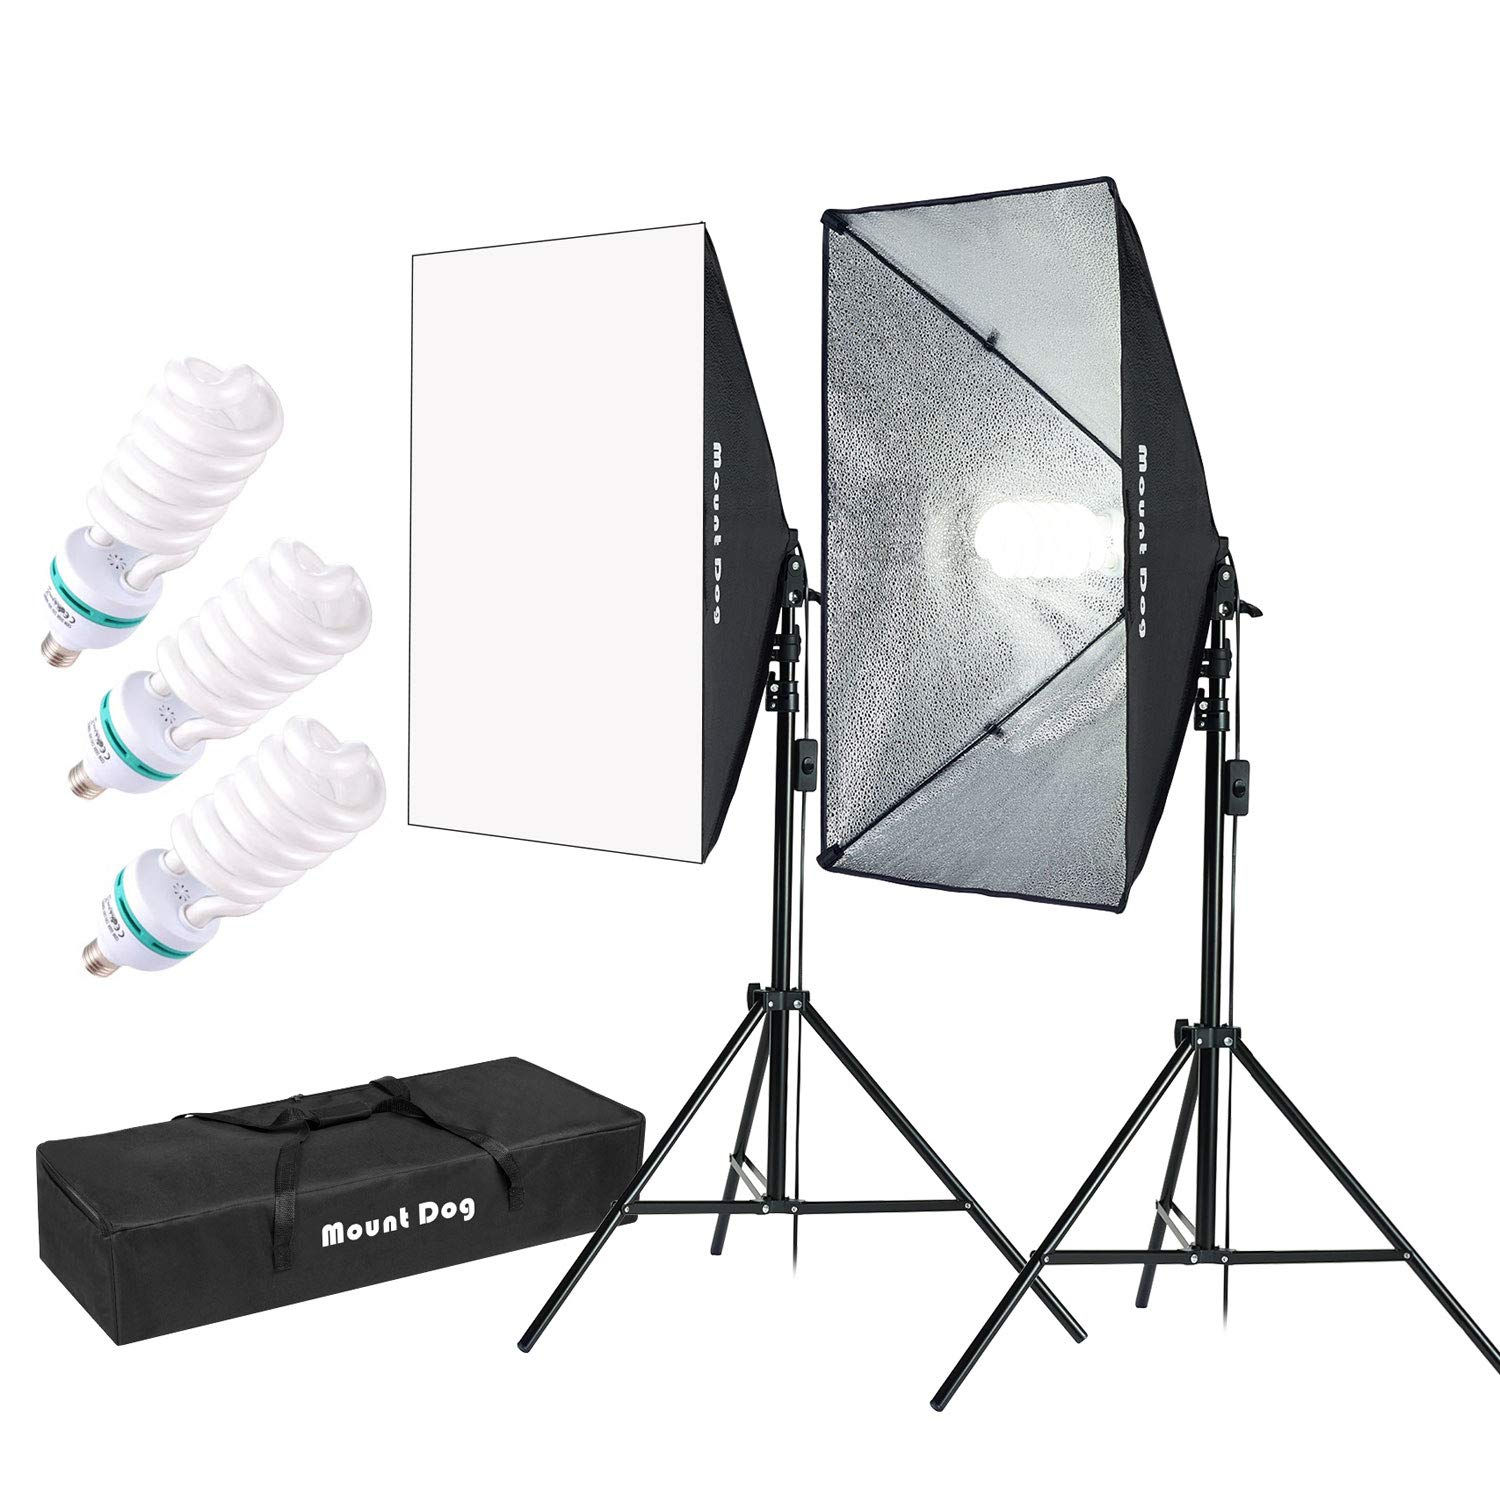 MOUNTDOG 1350W Softbox Lighting Kit Photography Studio Light 20''X28'' Professional Continuous Light System with 3pcs E27 Bulbs 5500K Photo Equipment for Filming Model Portraits Advertising Shooting by MOUNTDOG